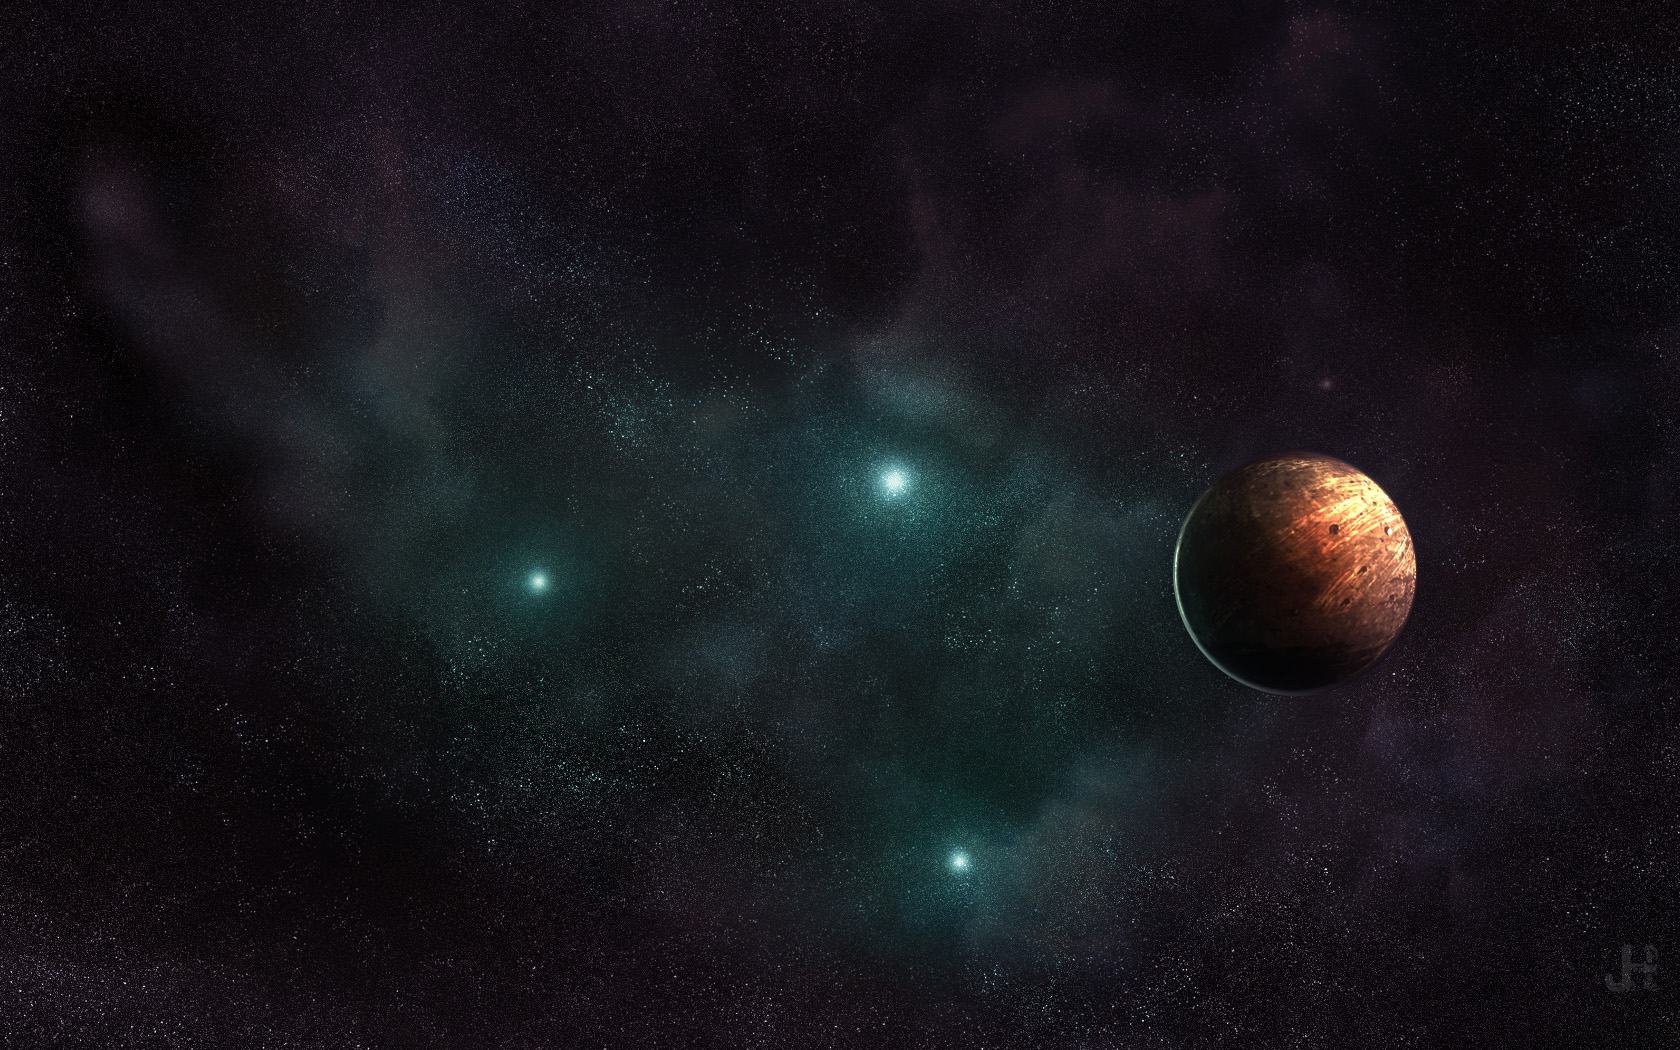 22 Mars Space Hd Wallpapers on Planet Earth Hd Wallpaper